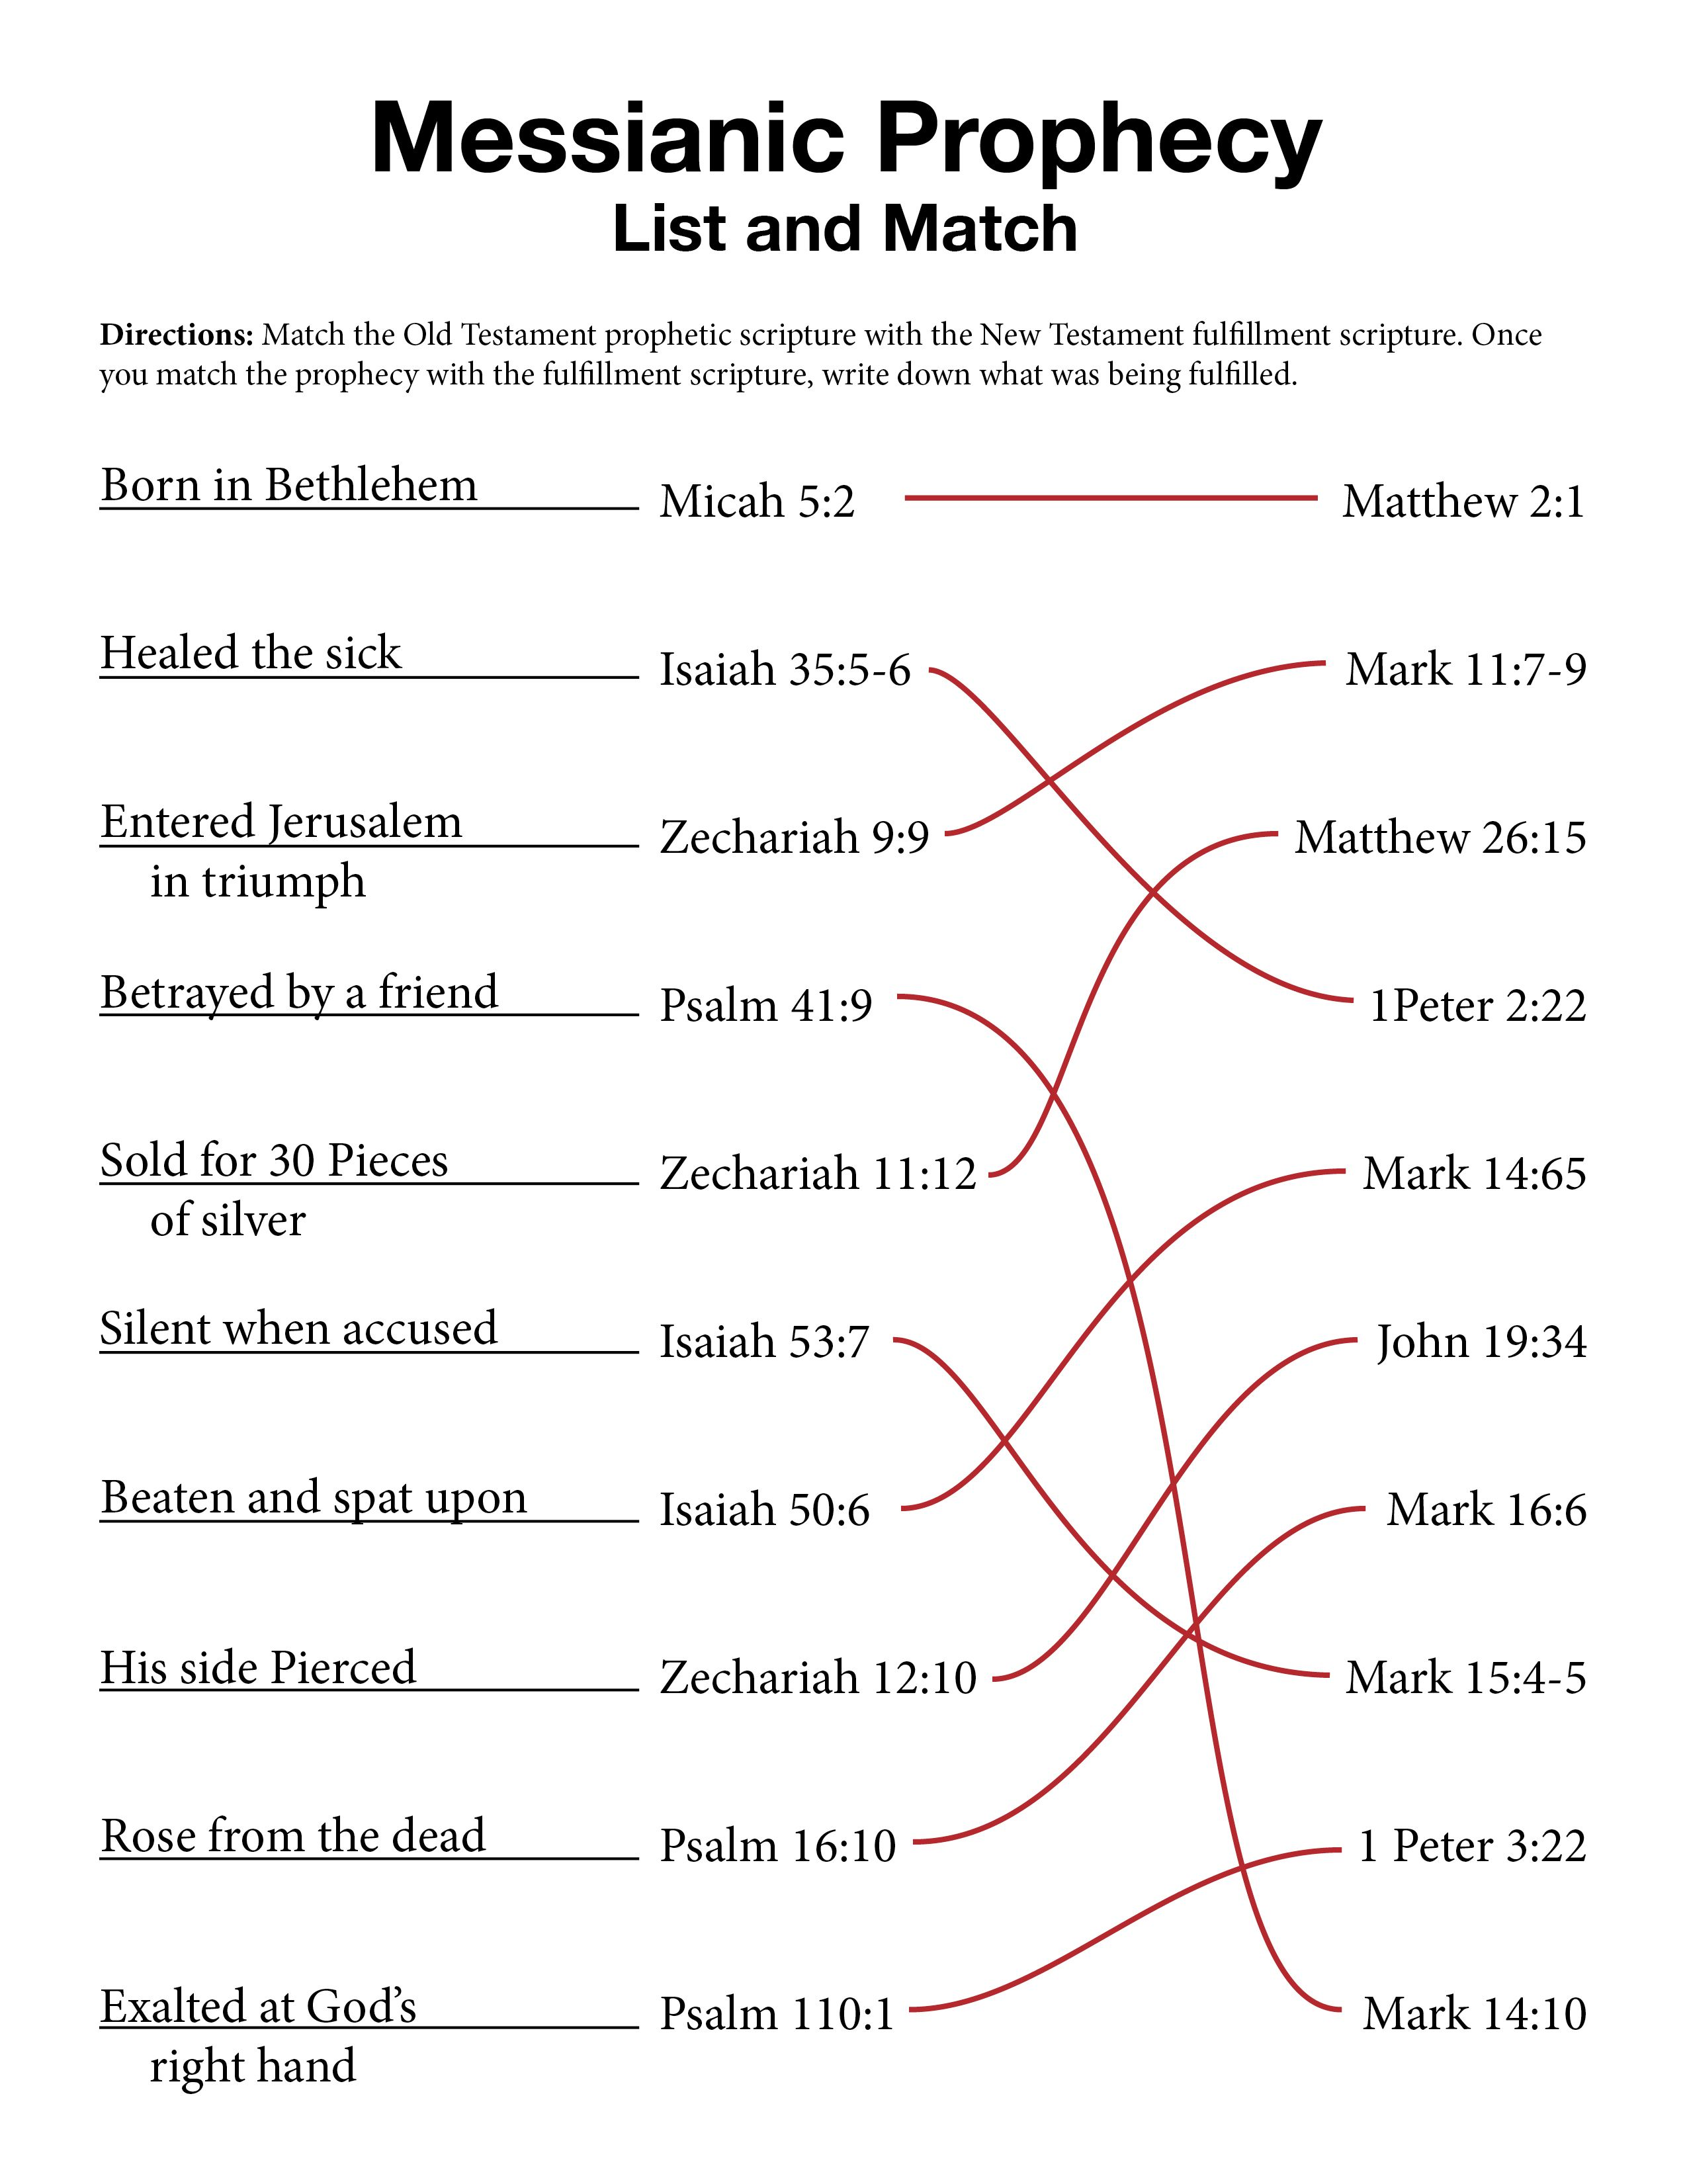 Messianic Prophecy Activity List And Match Answer Key